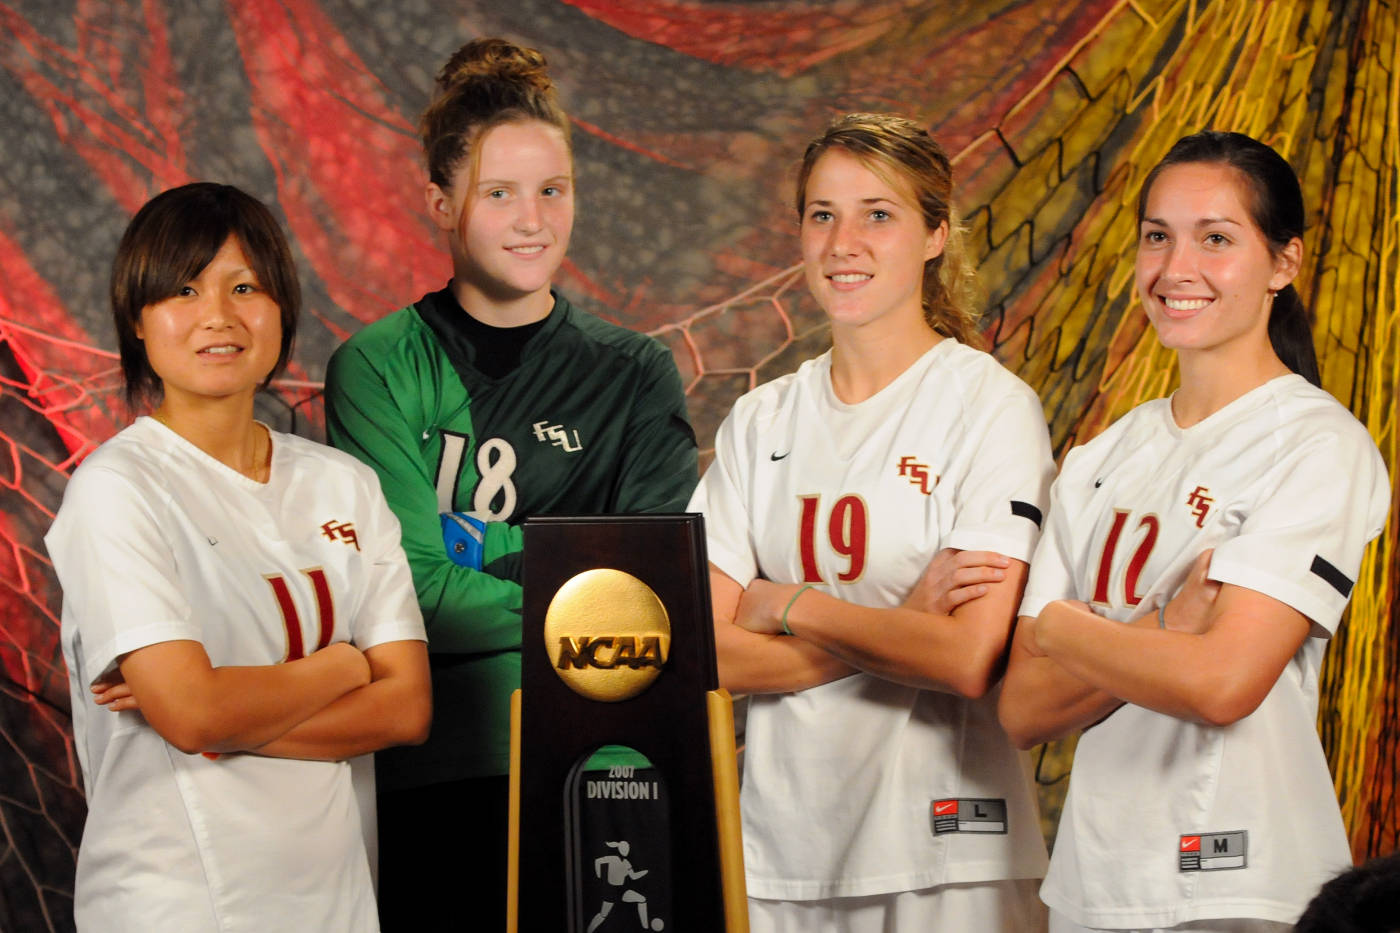 Mami Yamaguchi, Erin McNulty, Becky Edwards and Libby Gianeskis take a picture with the National Championship trophy during their interviews with ESPN.